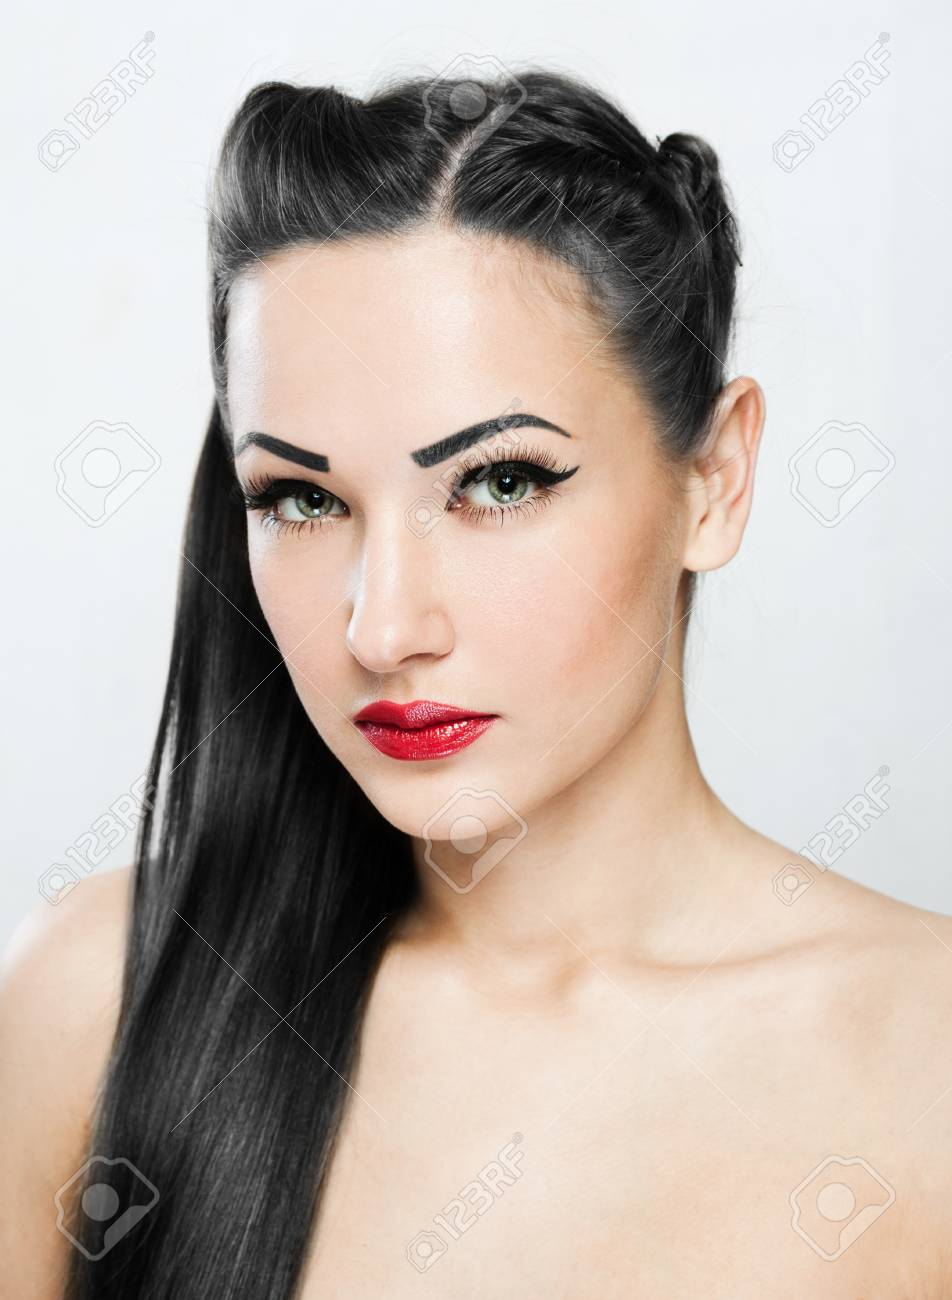 Beautiful Woman with Healthy Long Hair Stock Photo - 17753070